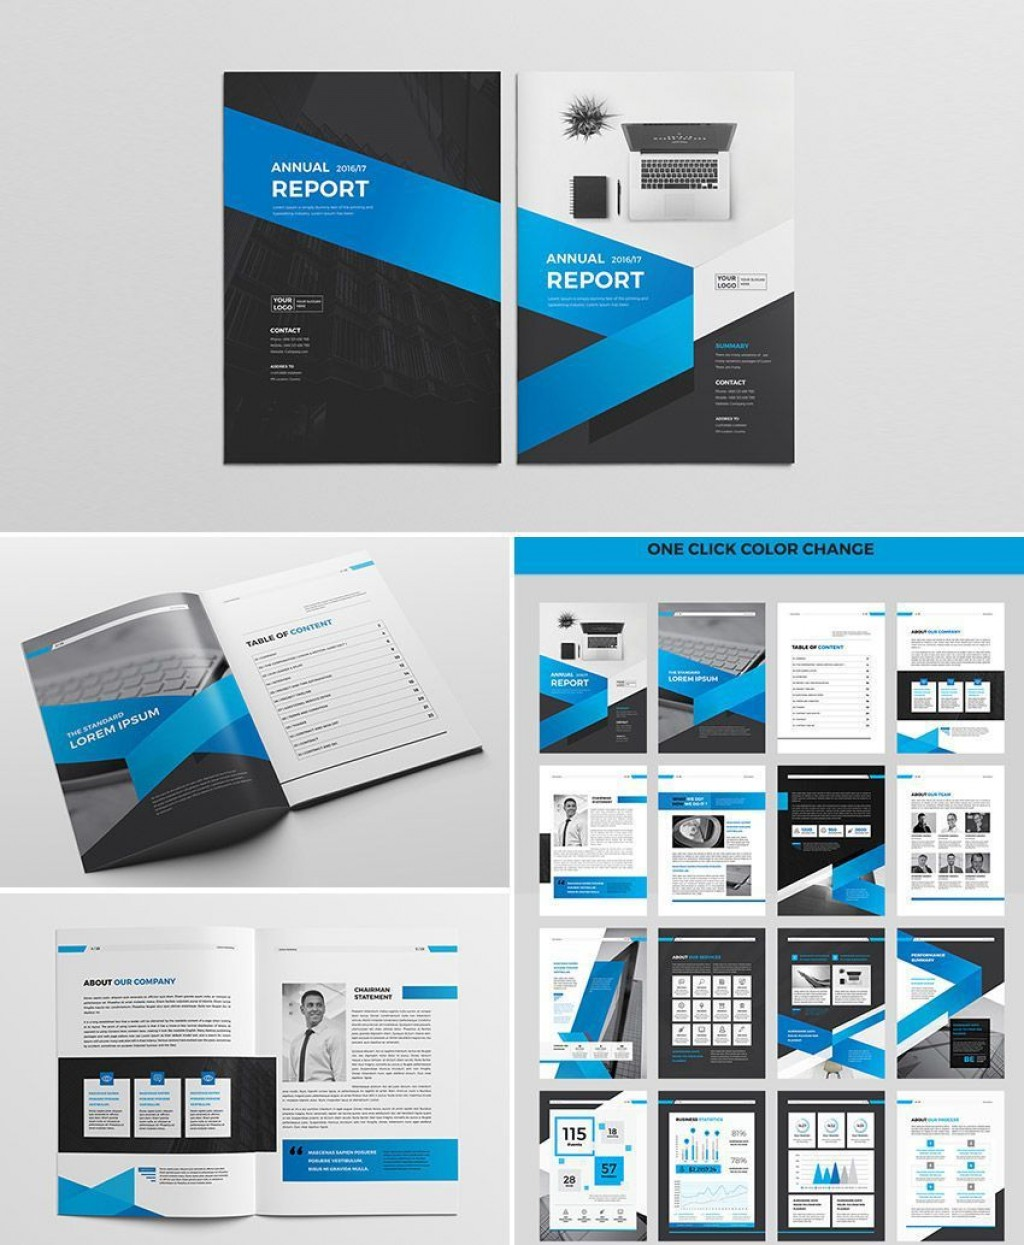 003 Incredible Free Indesign Annual Report Template Download Inspiration Large